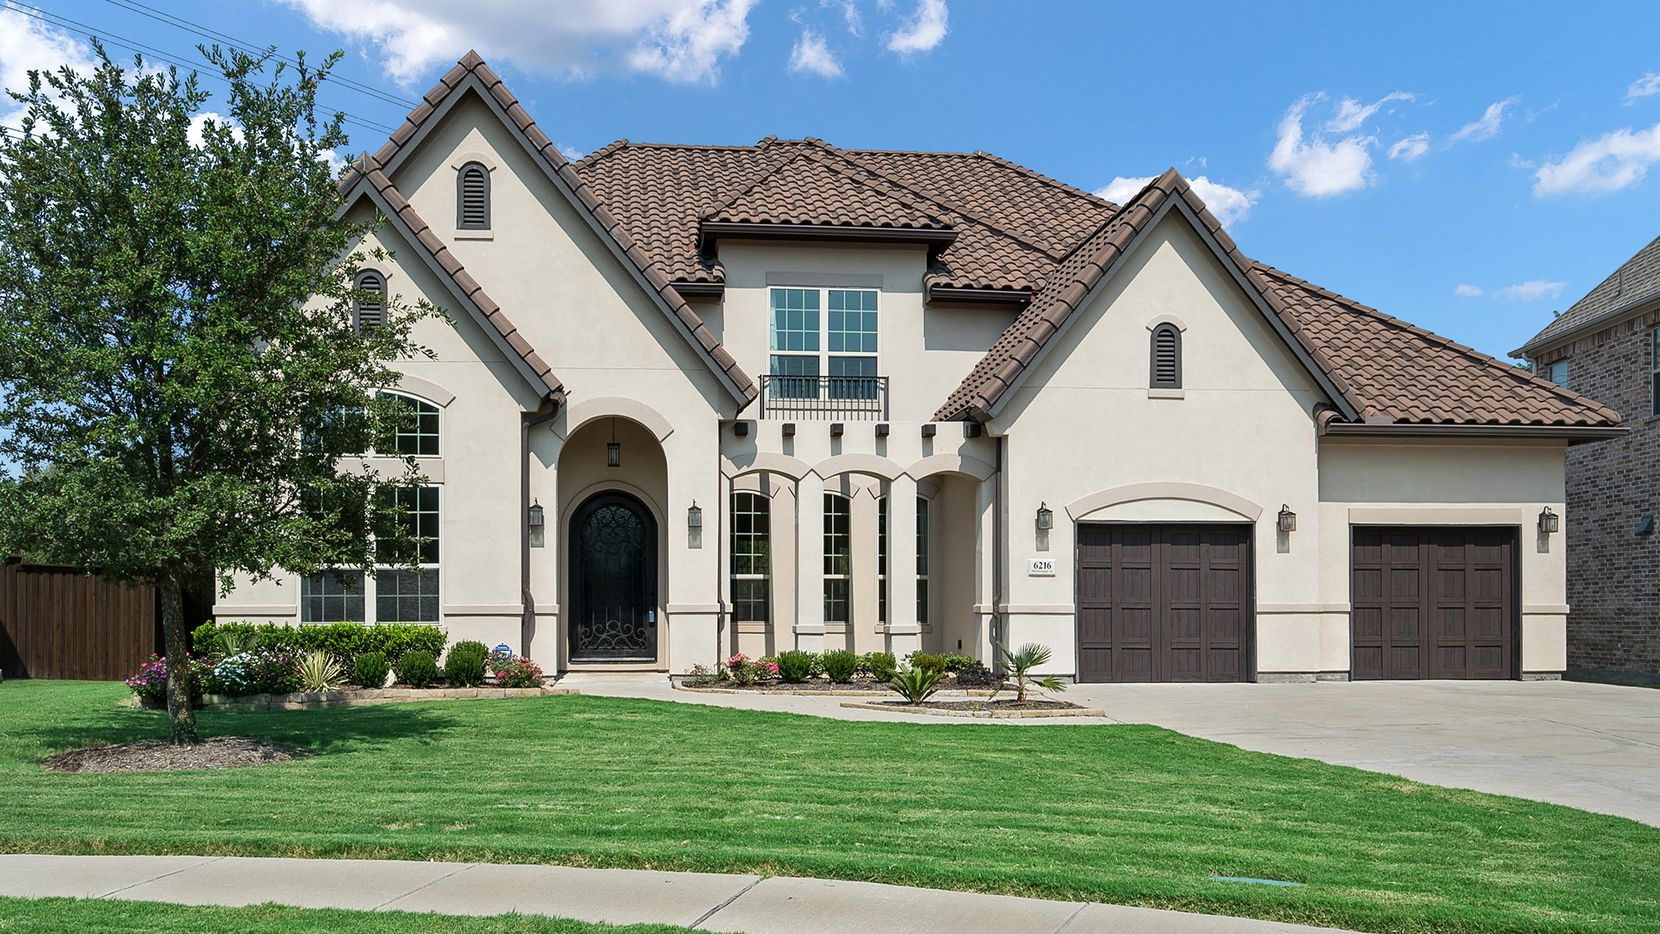 The estate at 6216 Martinique St. in Plano is listed at $1,199,000.